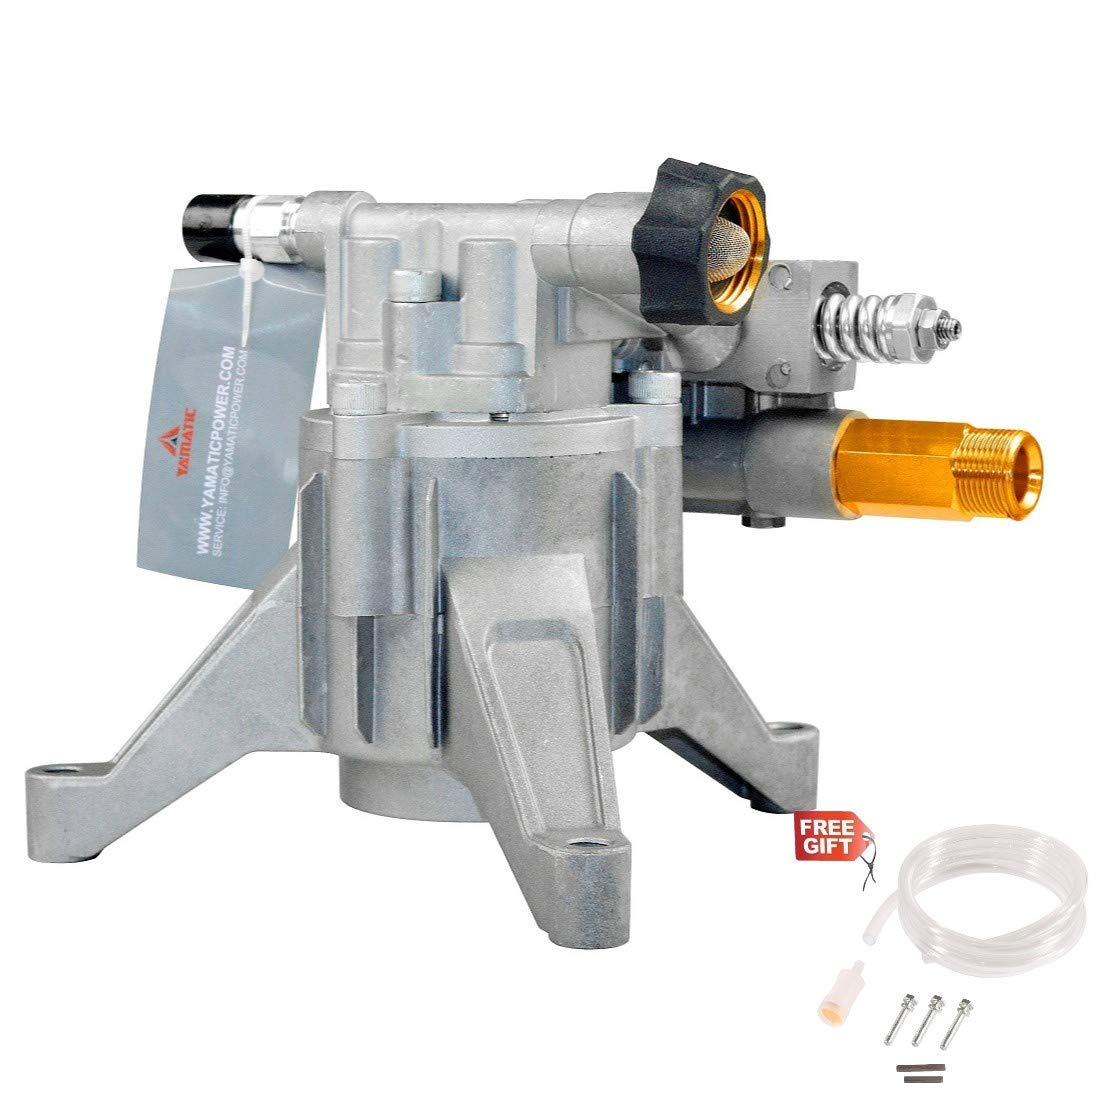 """YAMATIC Pressure Washer Replacement Pump Vertical Axial 2900 PSI 2.3 GPM fit 7/8"""" Vertical Shaft Honda Briggs Kohler Engine fit Most Ryobi, Craftsman, Simpson, Excell, Troy-Bilt, AR, Ironton Washer"""